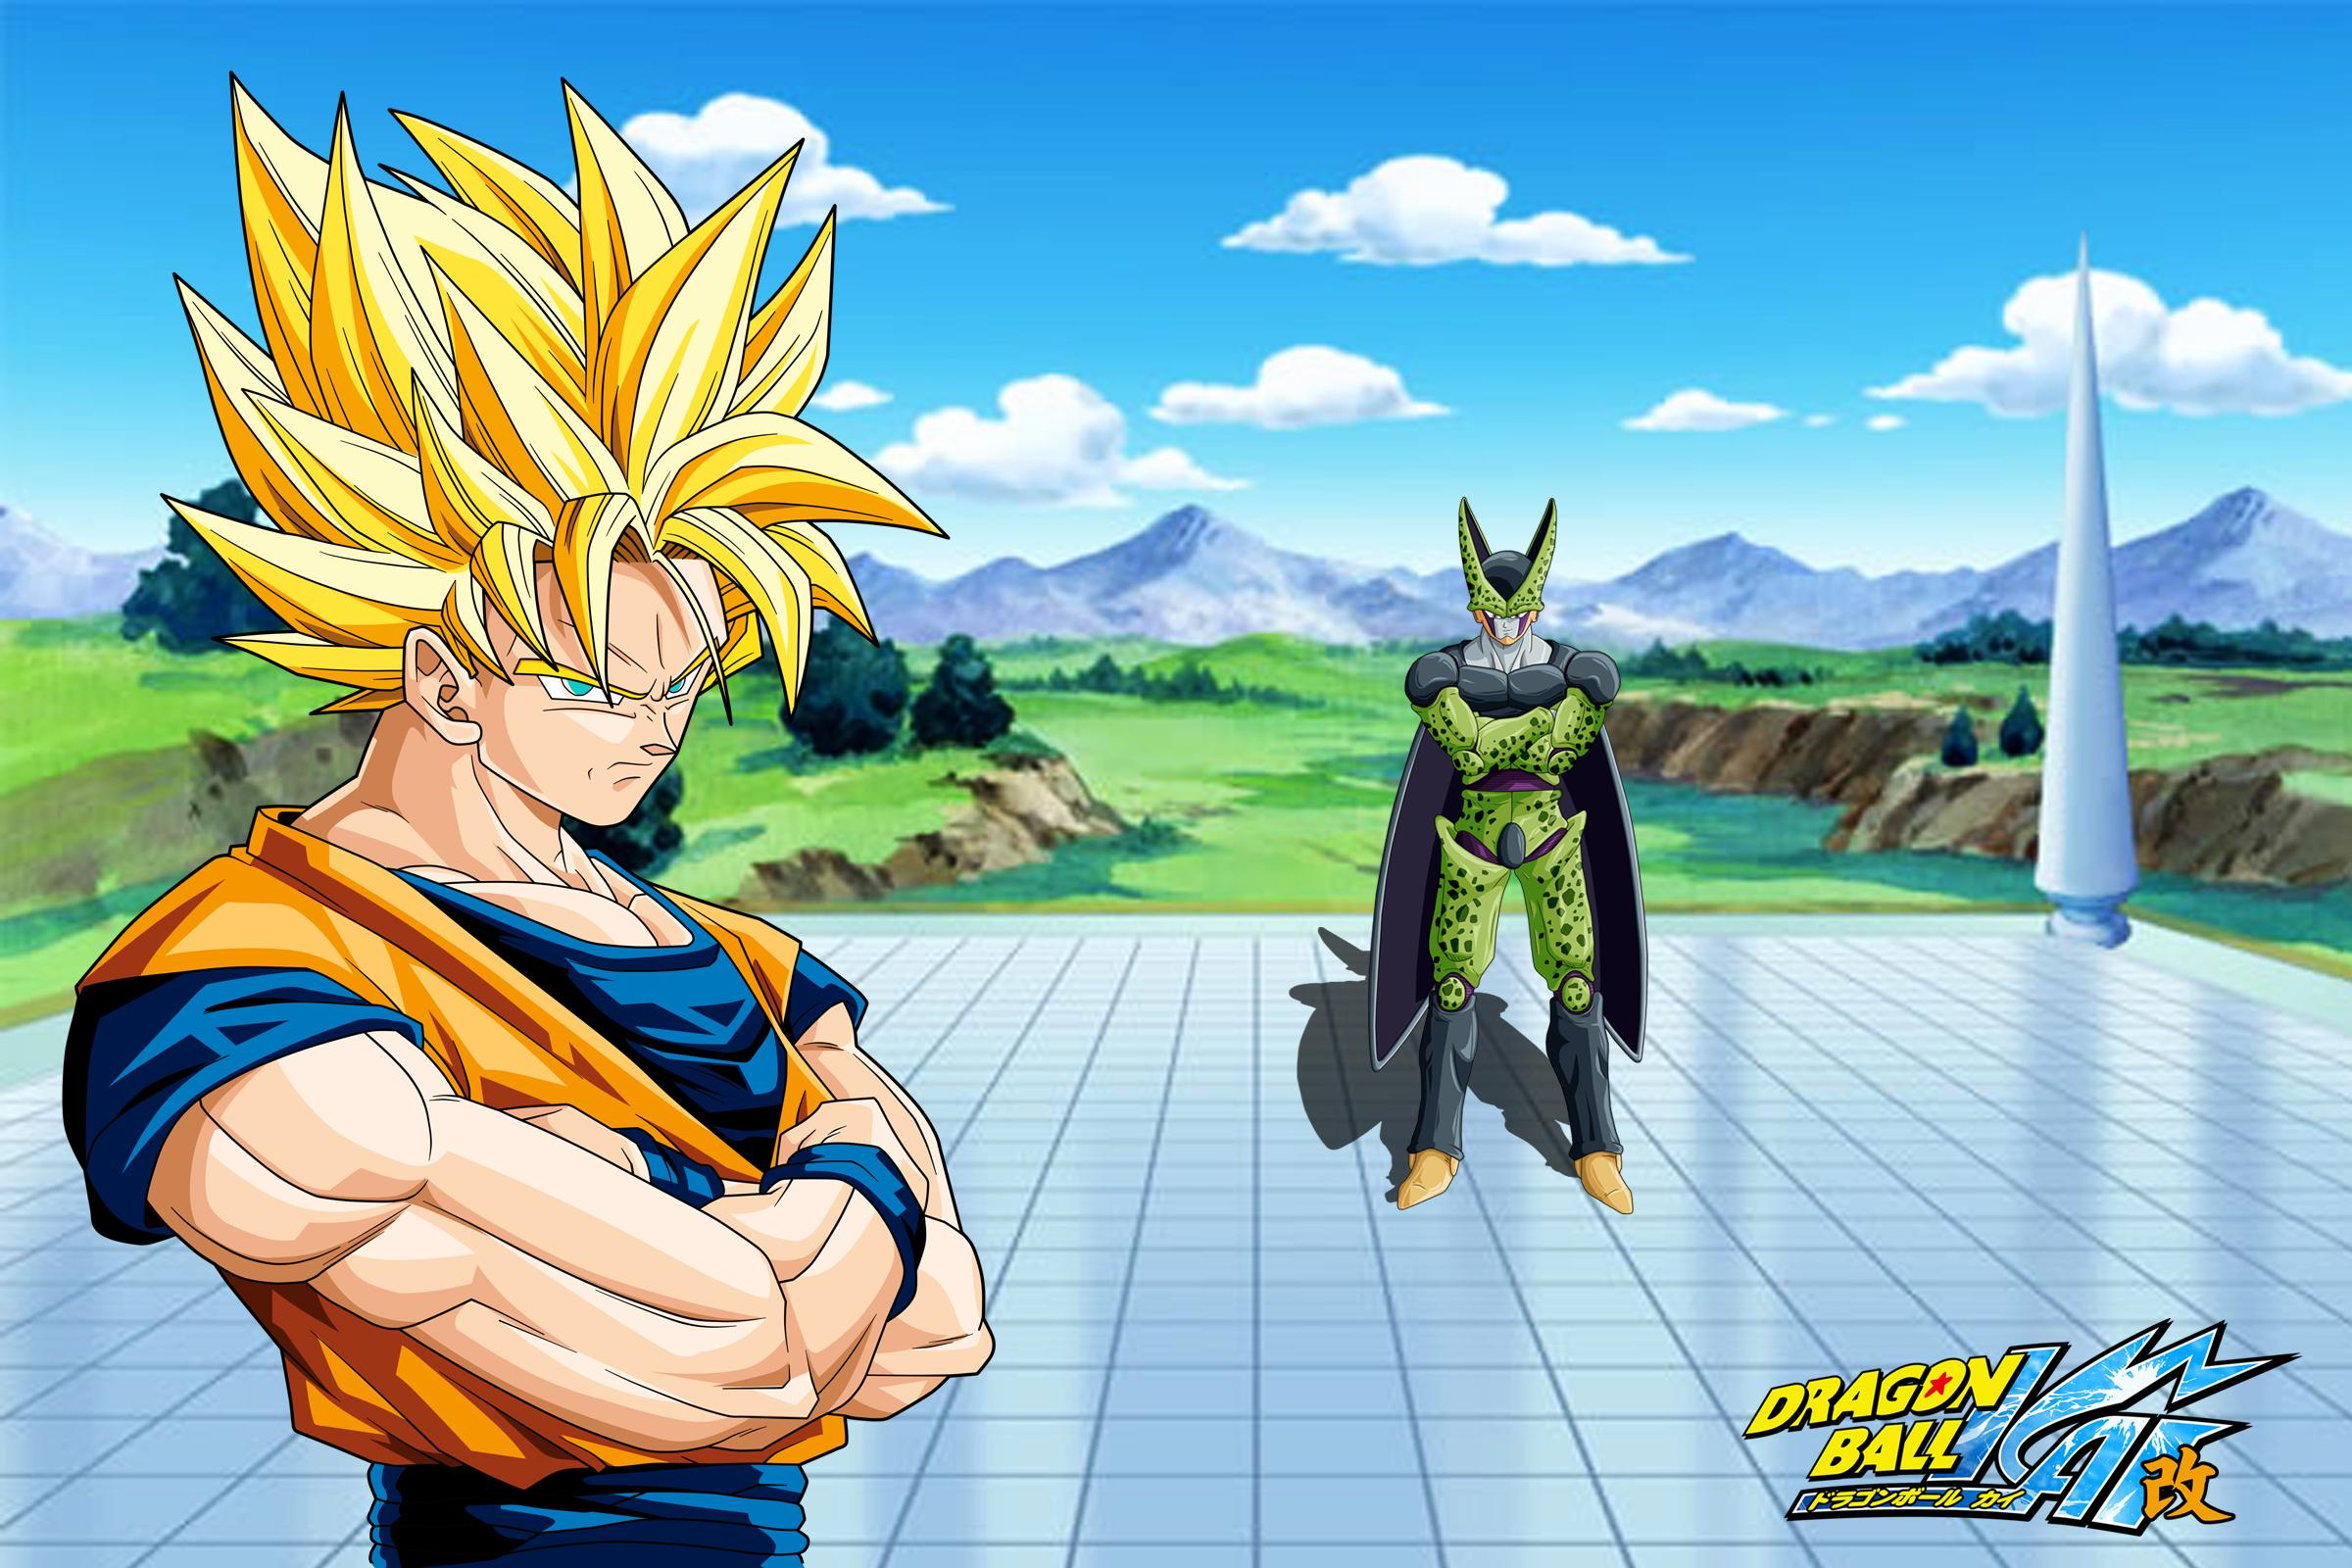 Wallpaper Iphone X Black Dragon Ball Z Wallpapers Pictures Images